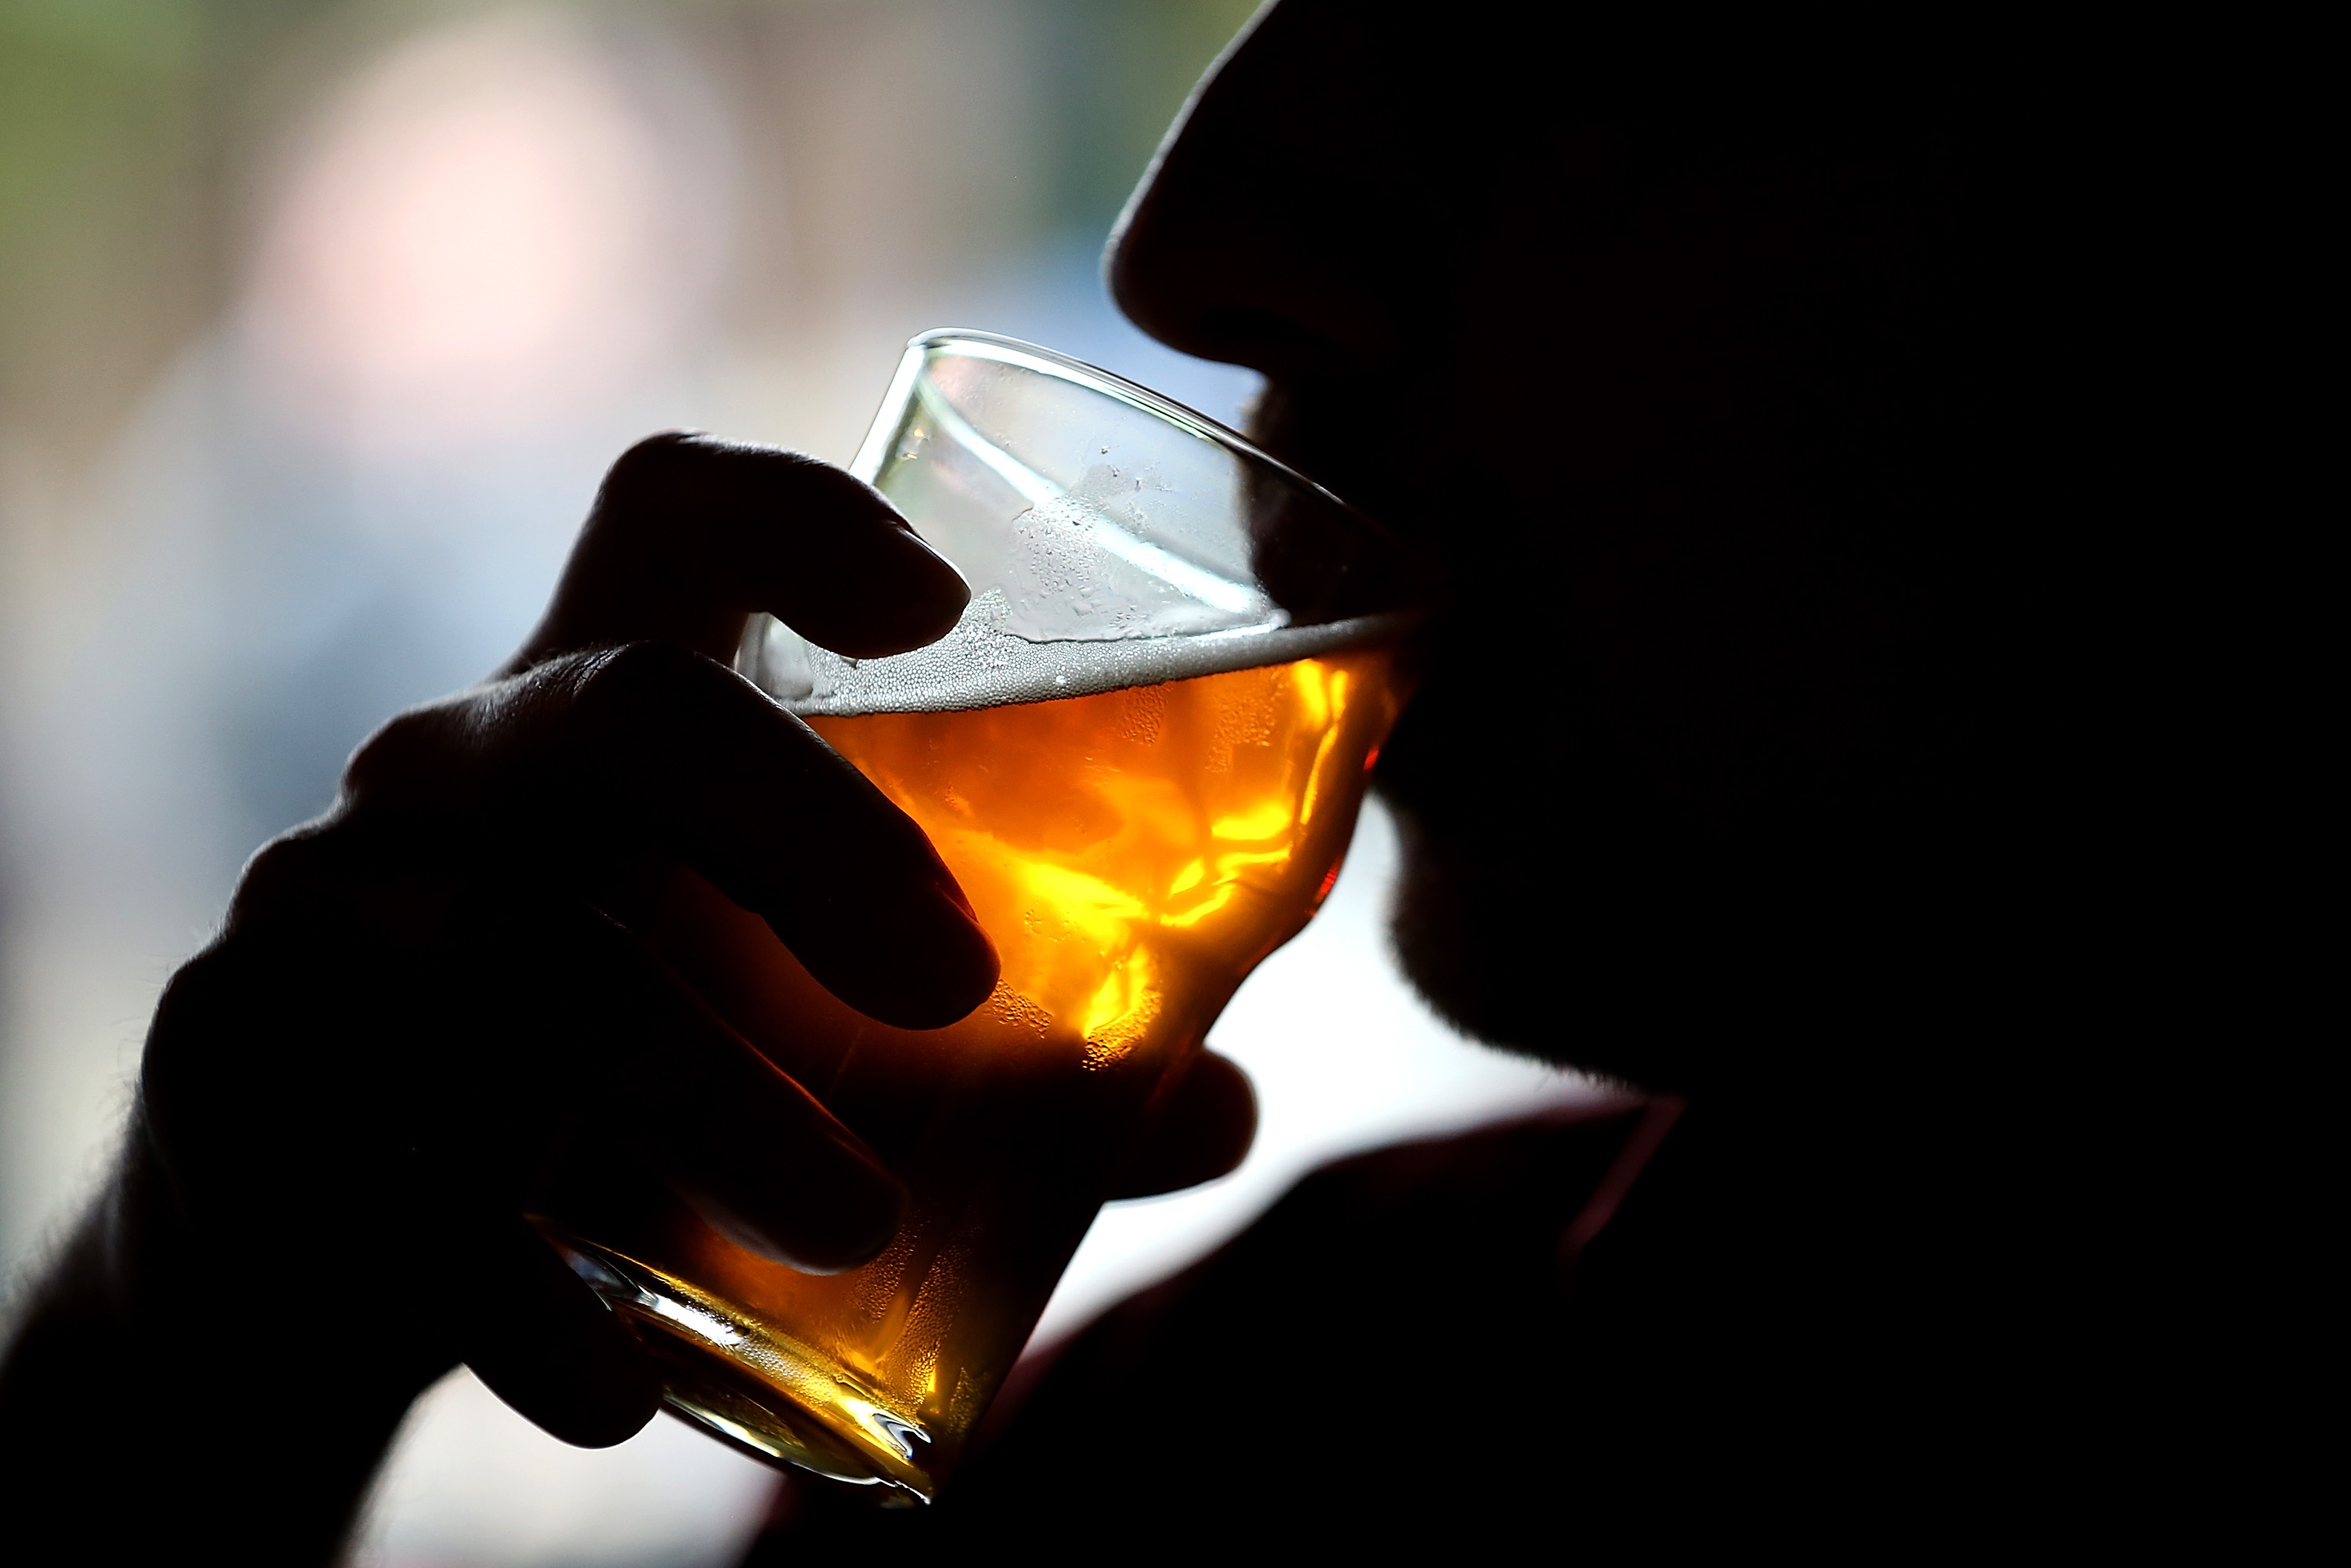 When people can legally drink, they suddenly begin committing way more crime